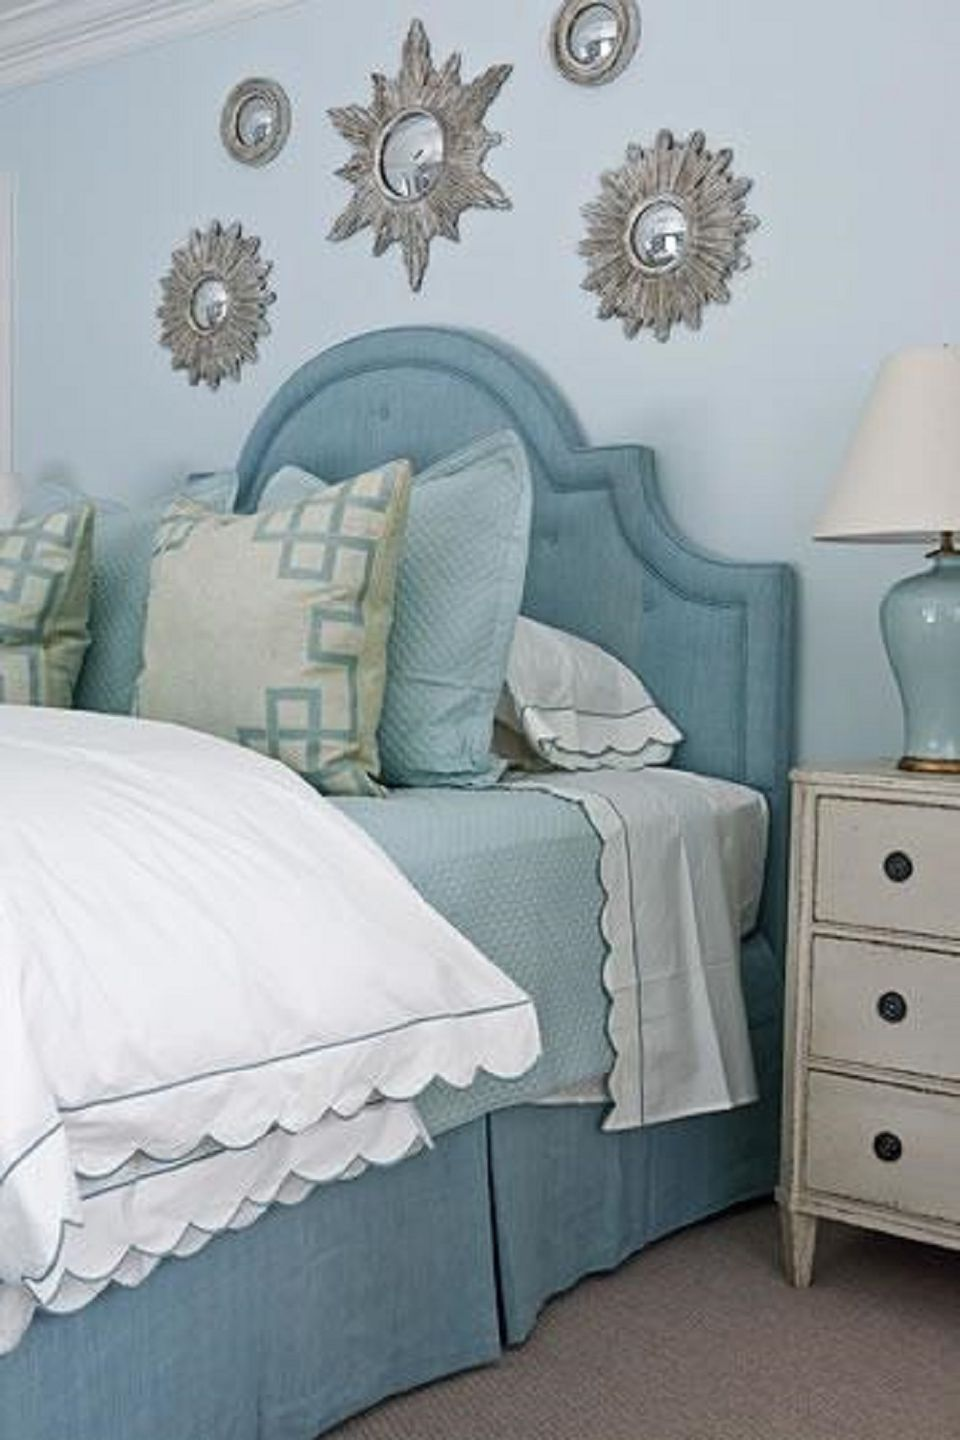 Baby Bedroom Ideas Blue: 25 Stunning Blue Bedroom Ideas